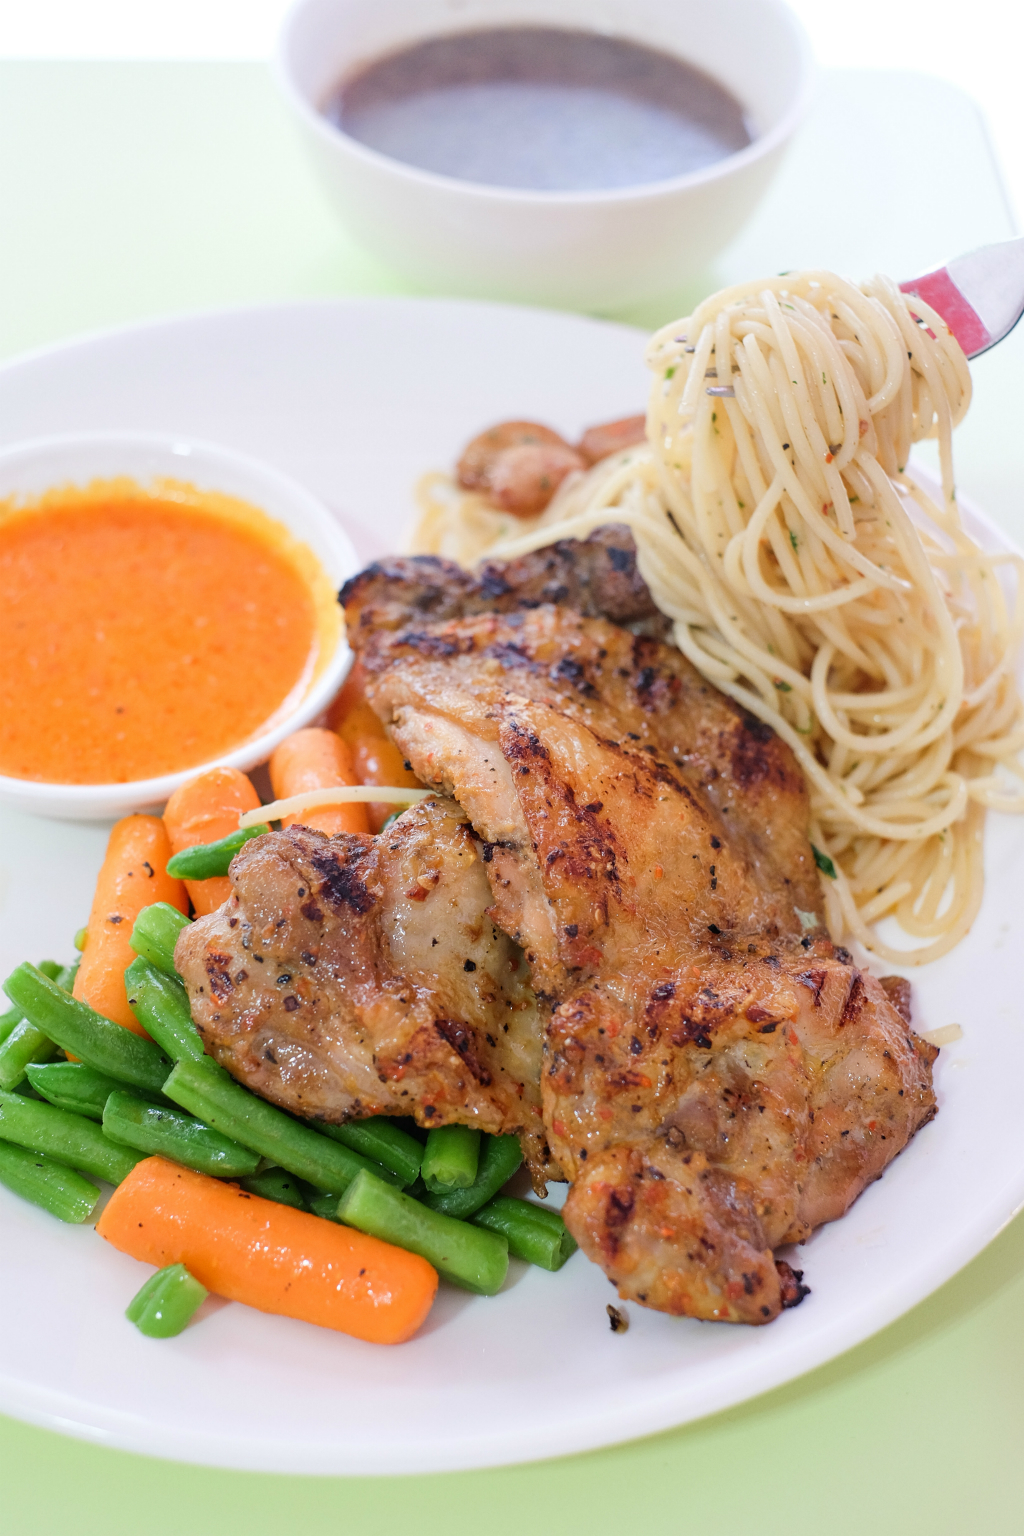 Fancy Hawker Food: The Pasta Stop's Grilled Spicy Chicken Chop Combo @ Ci Yuan Hawker Centre